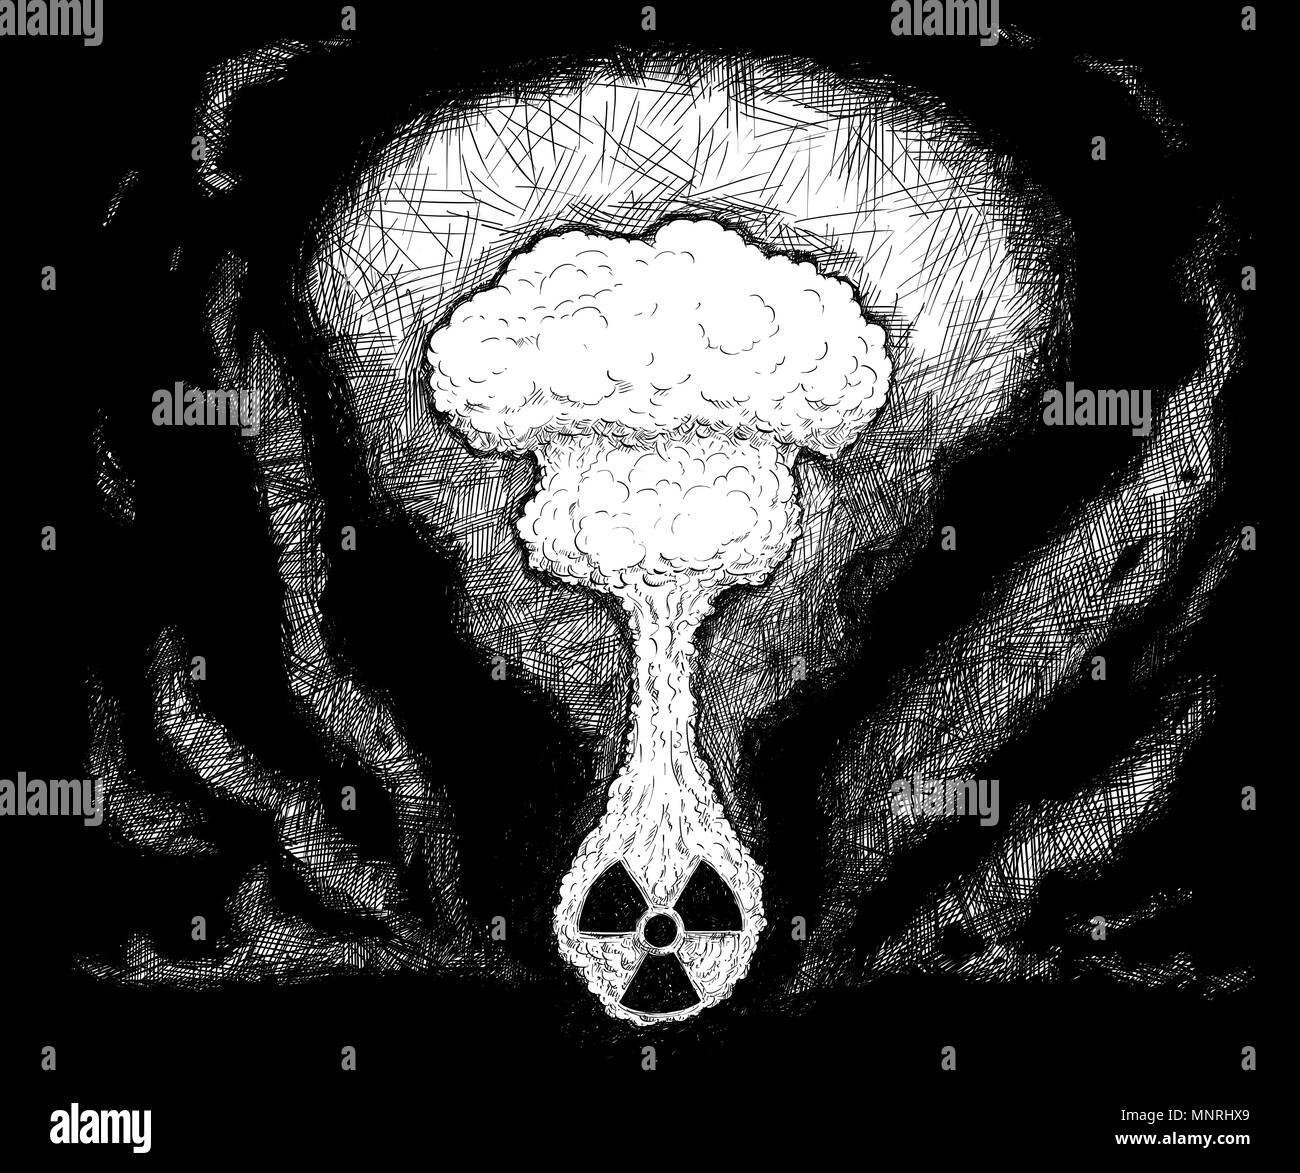 Artistic Pen and Ink Drawing Illustration of Nuclear Explosion - Stock Image